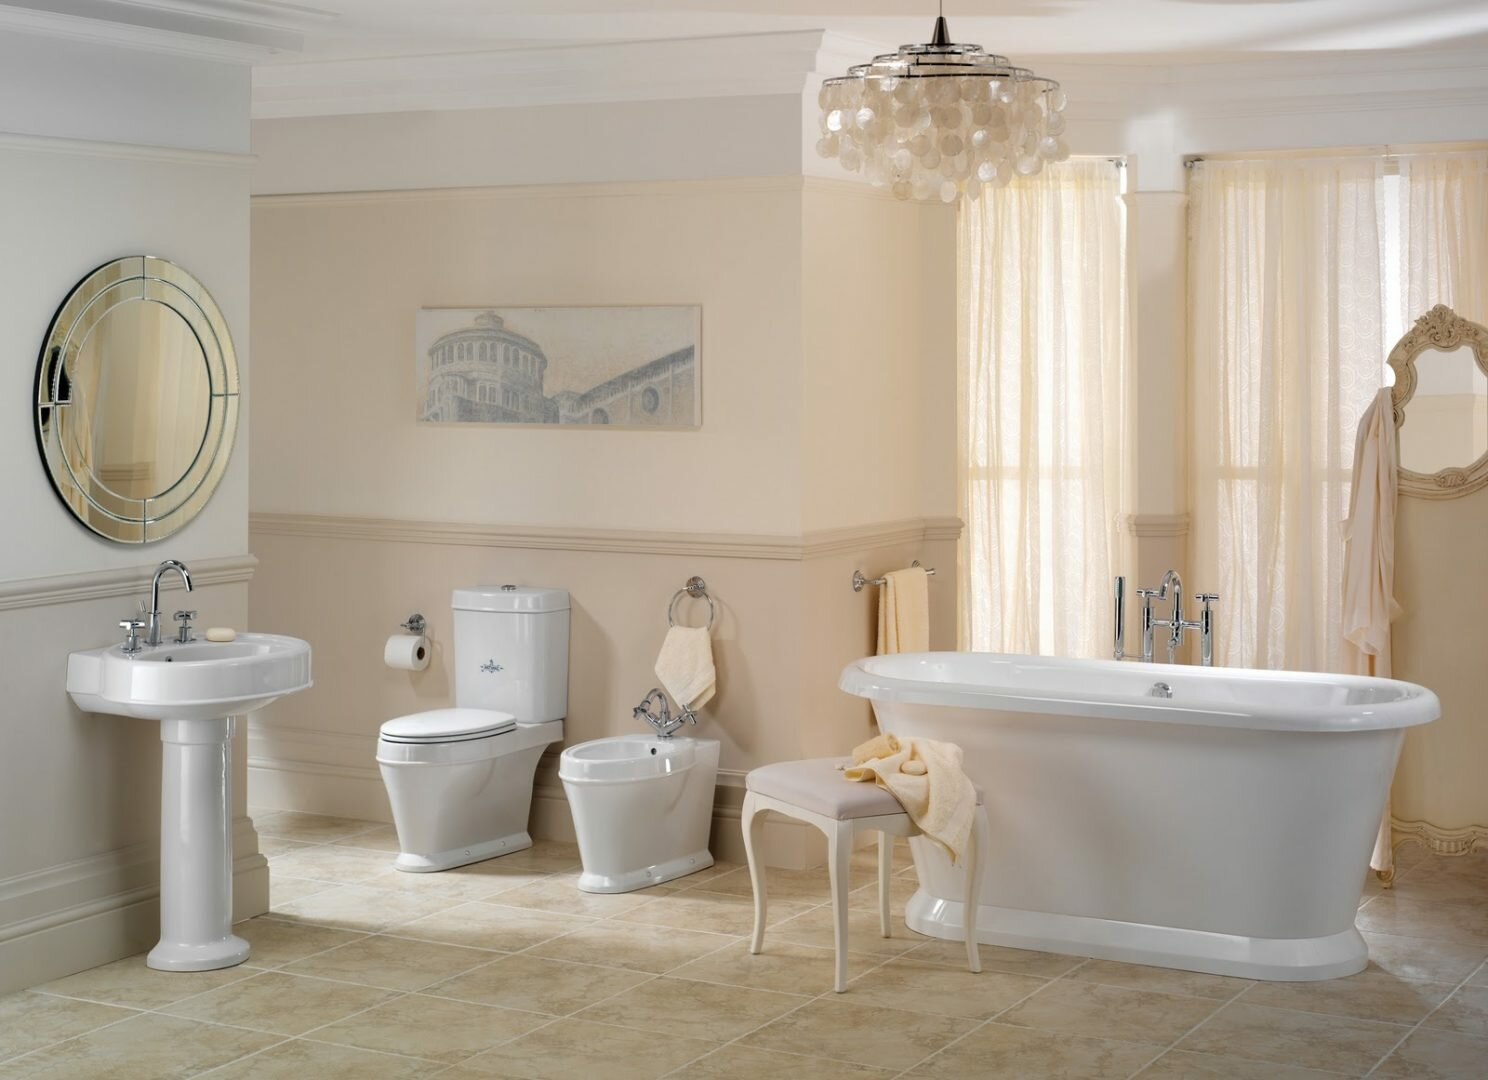 The 18 best bathroom decor examples of all time - Decoraciones de interiores ...